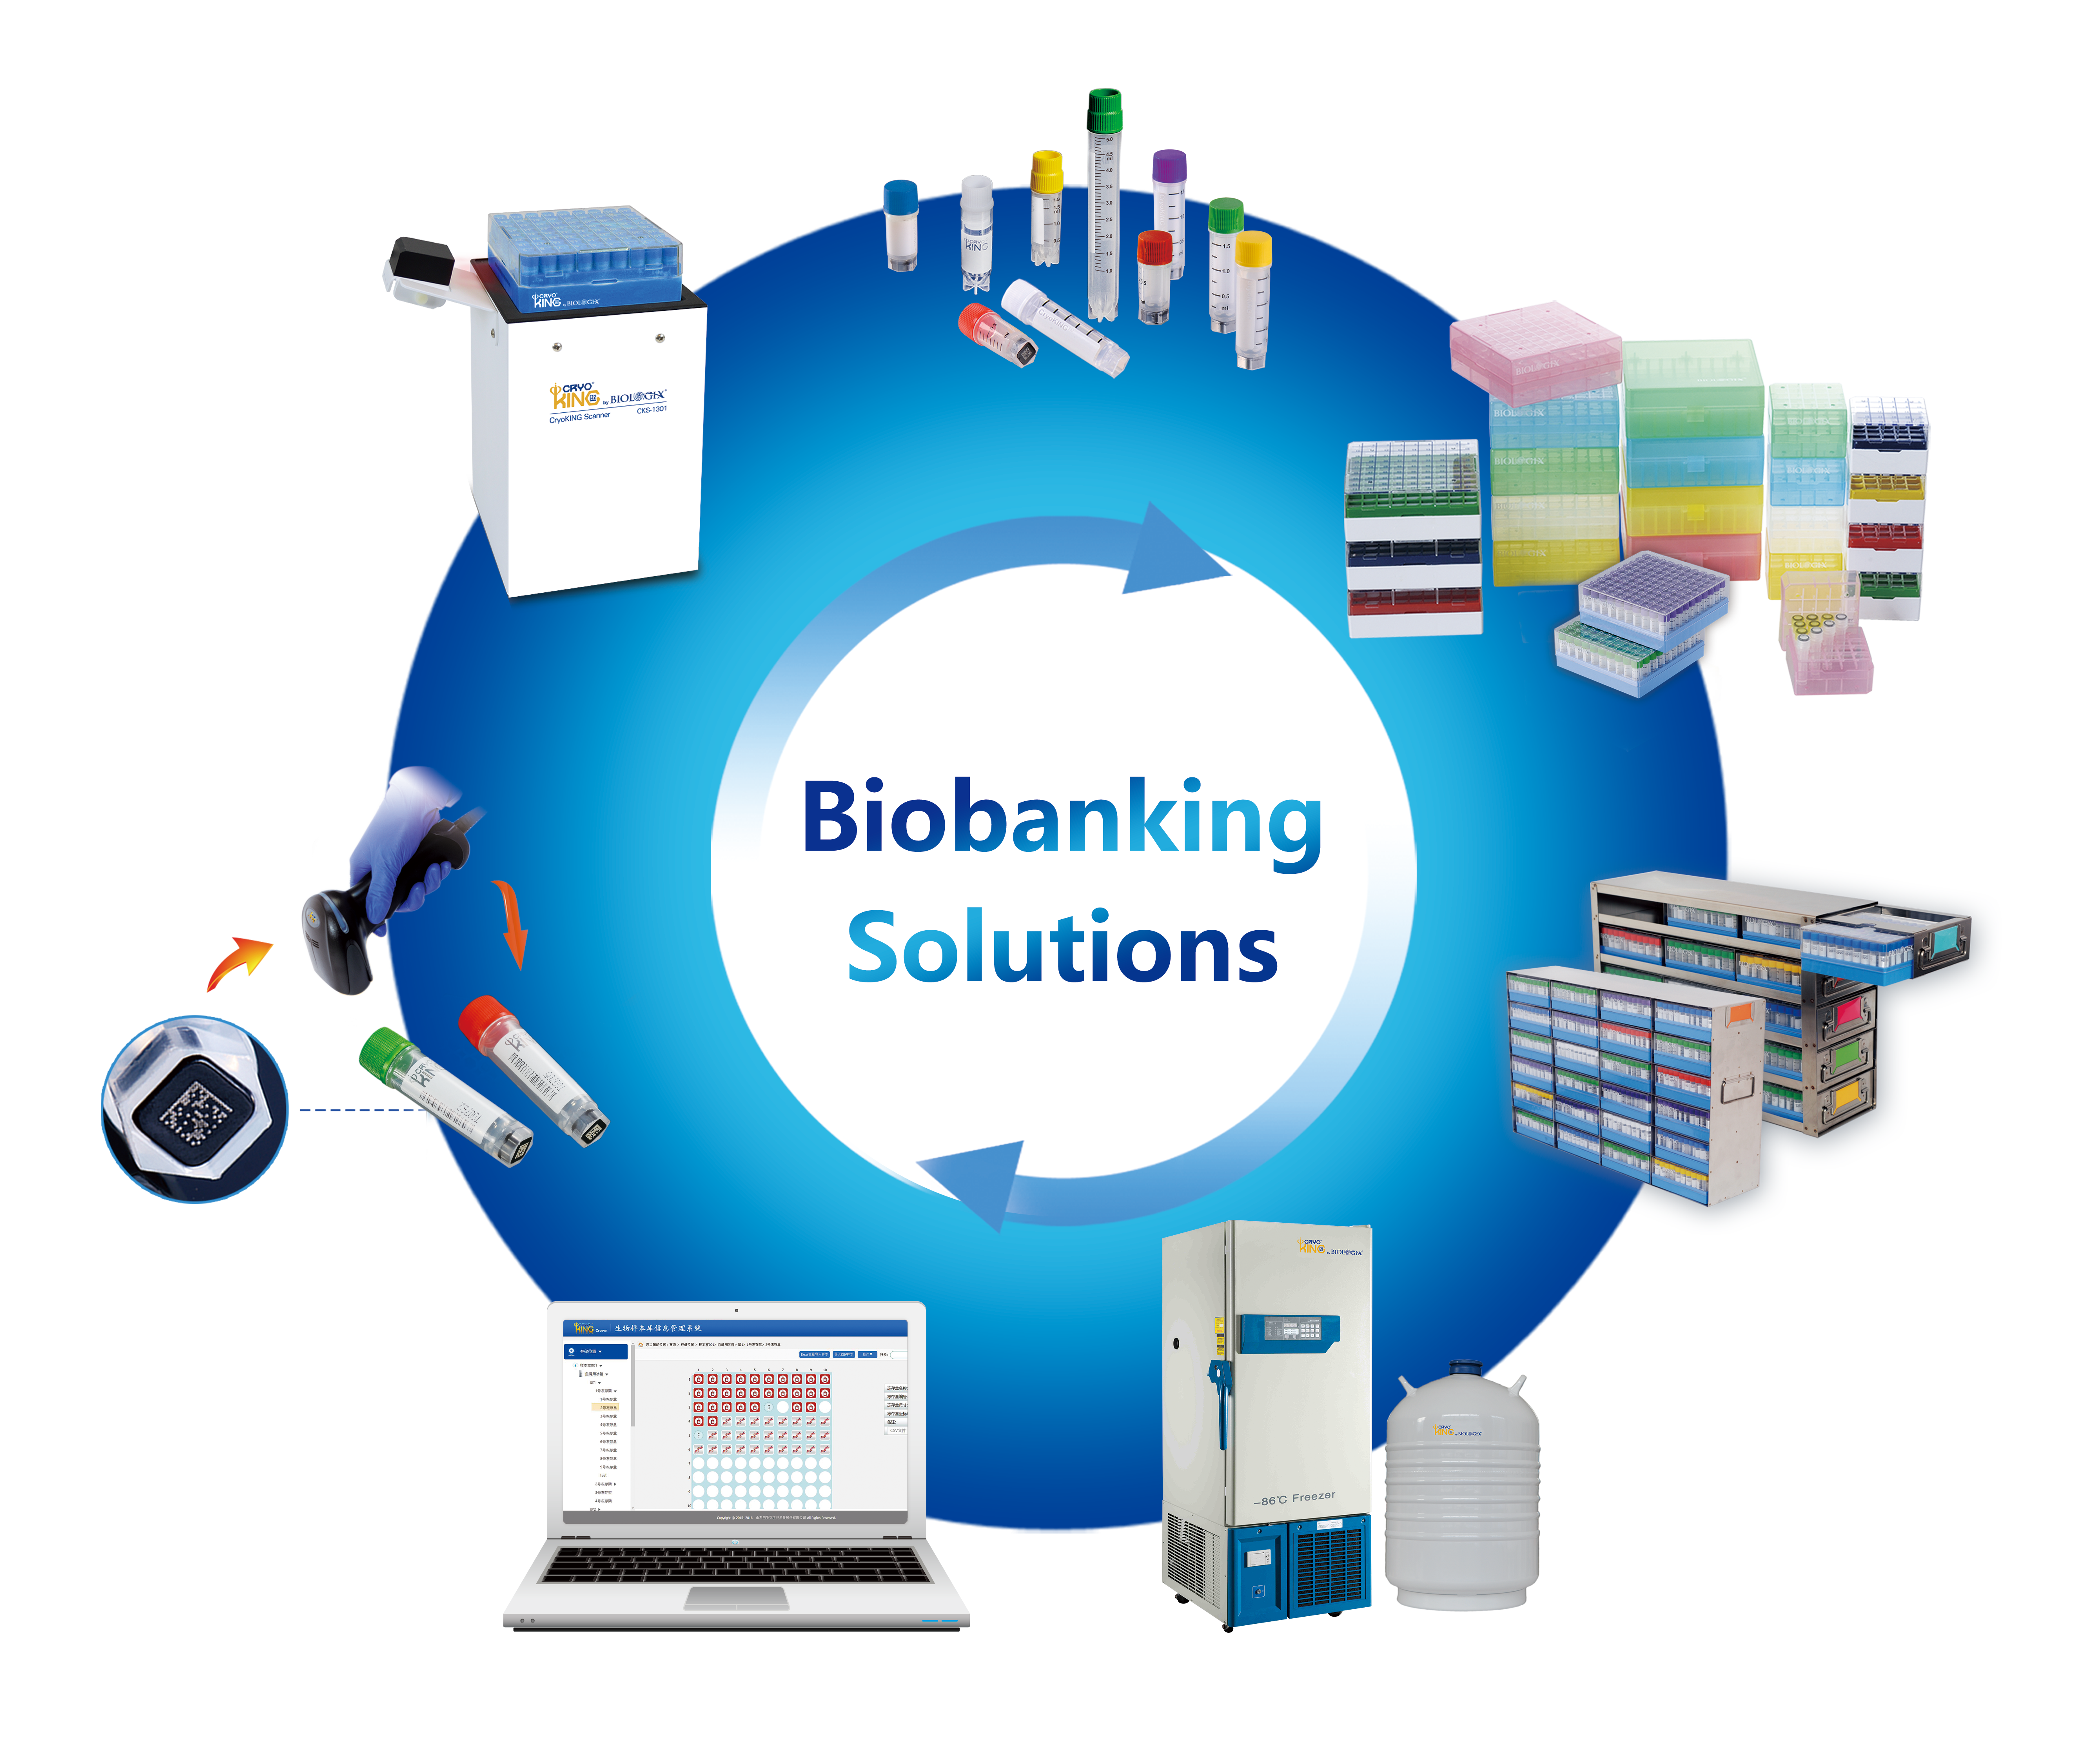 Cryoking Complete Biobanking Solution If You Have Any